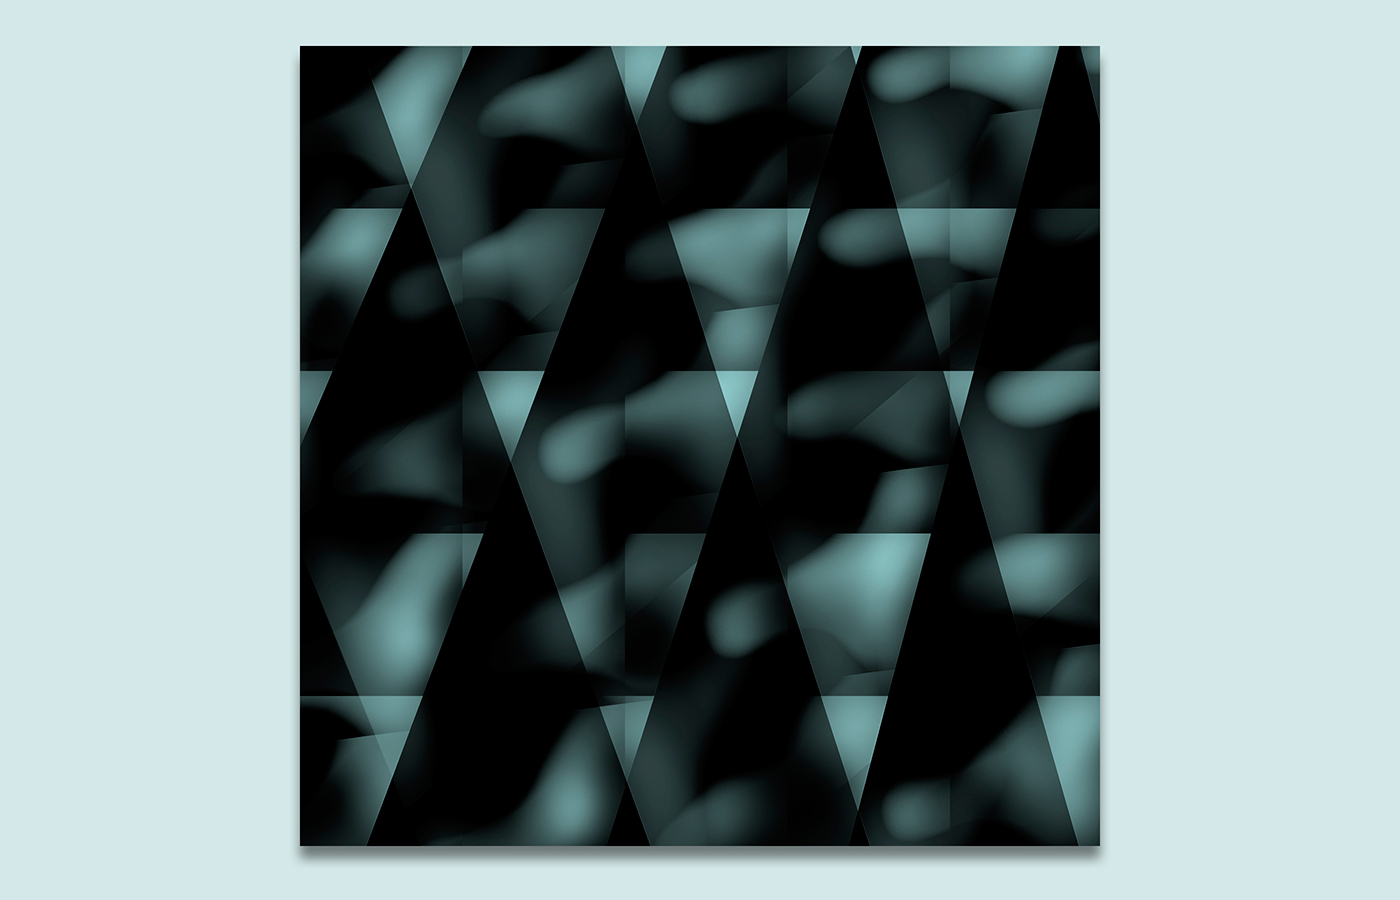 moire patterns Abstracts overlays grids